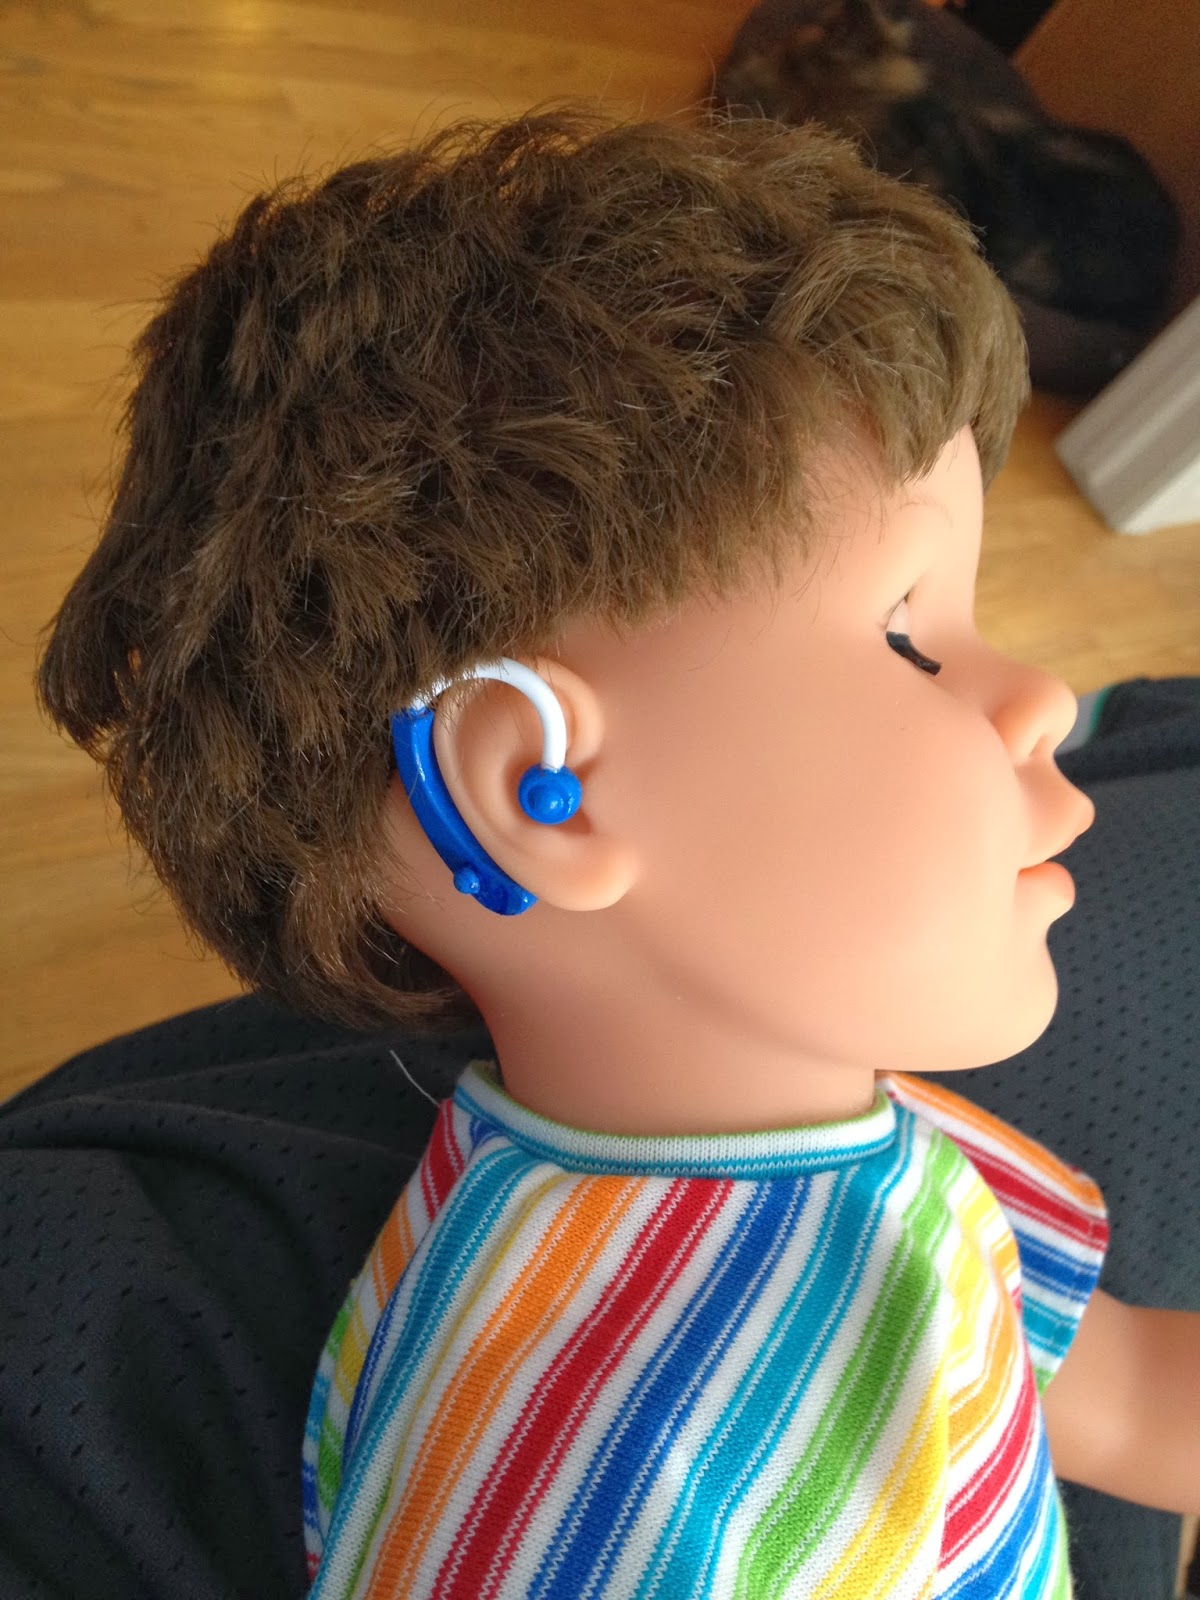 doll with hearing aids